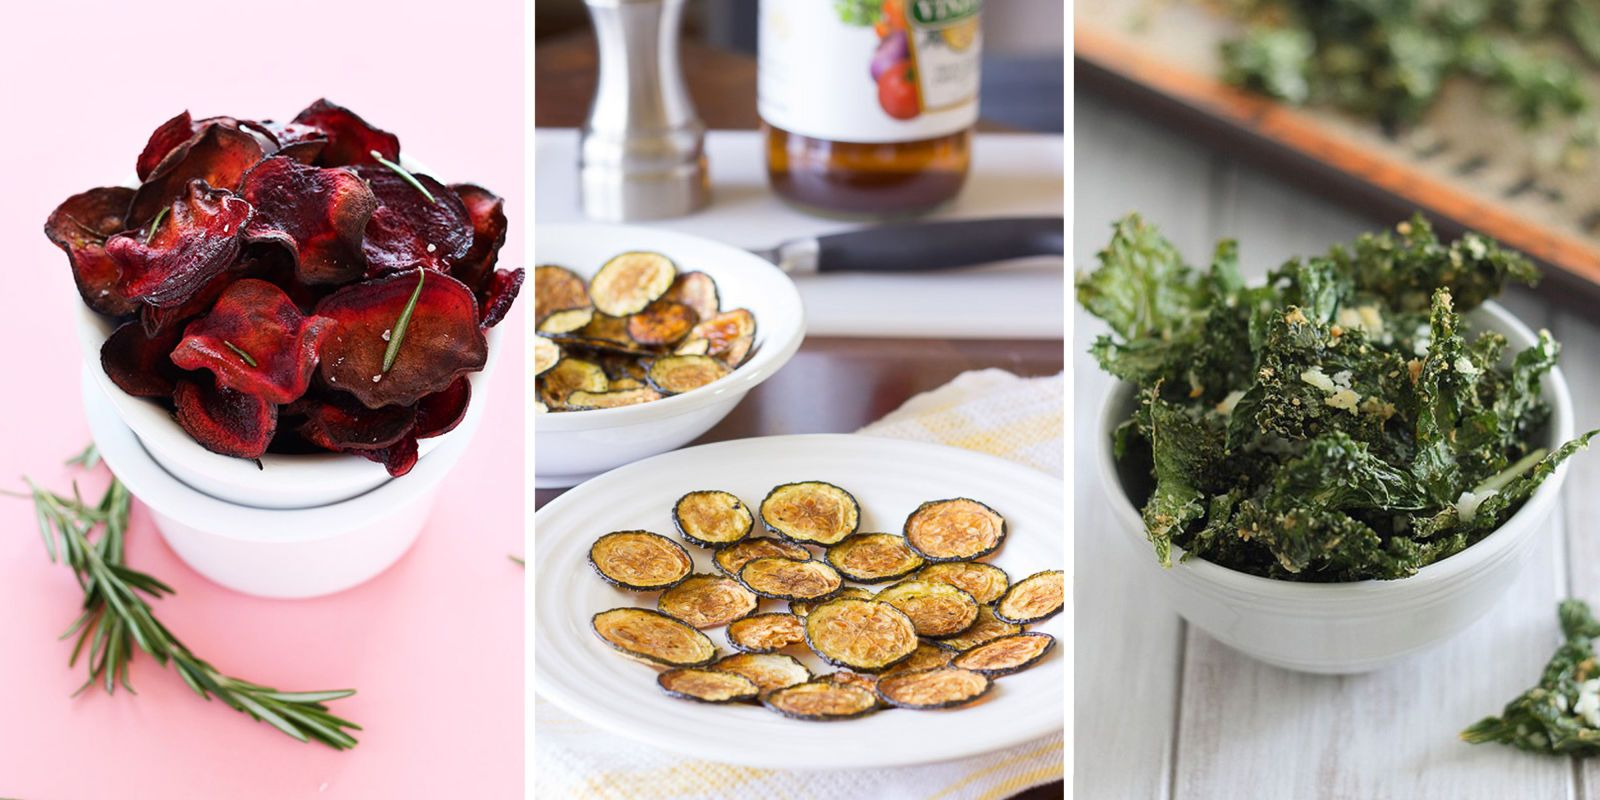 20 homemade fruit and veggie chips to curb your junk food